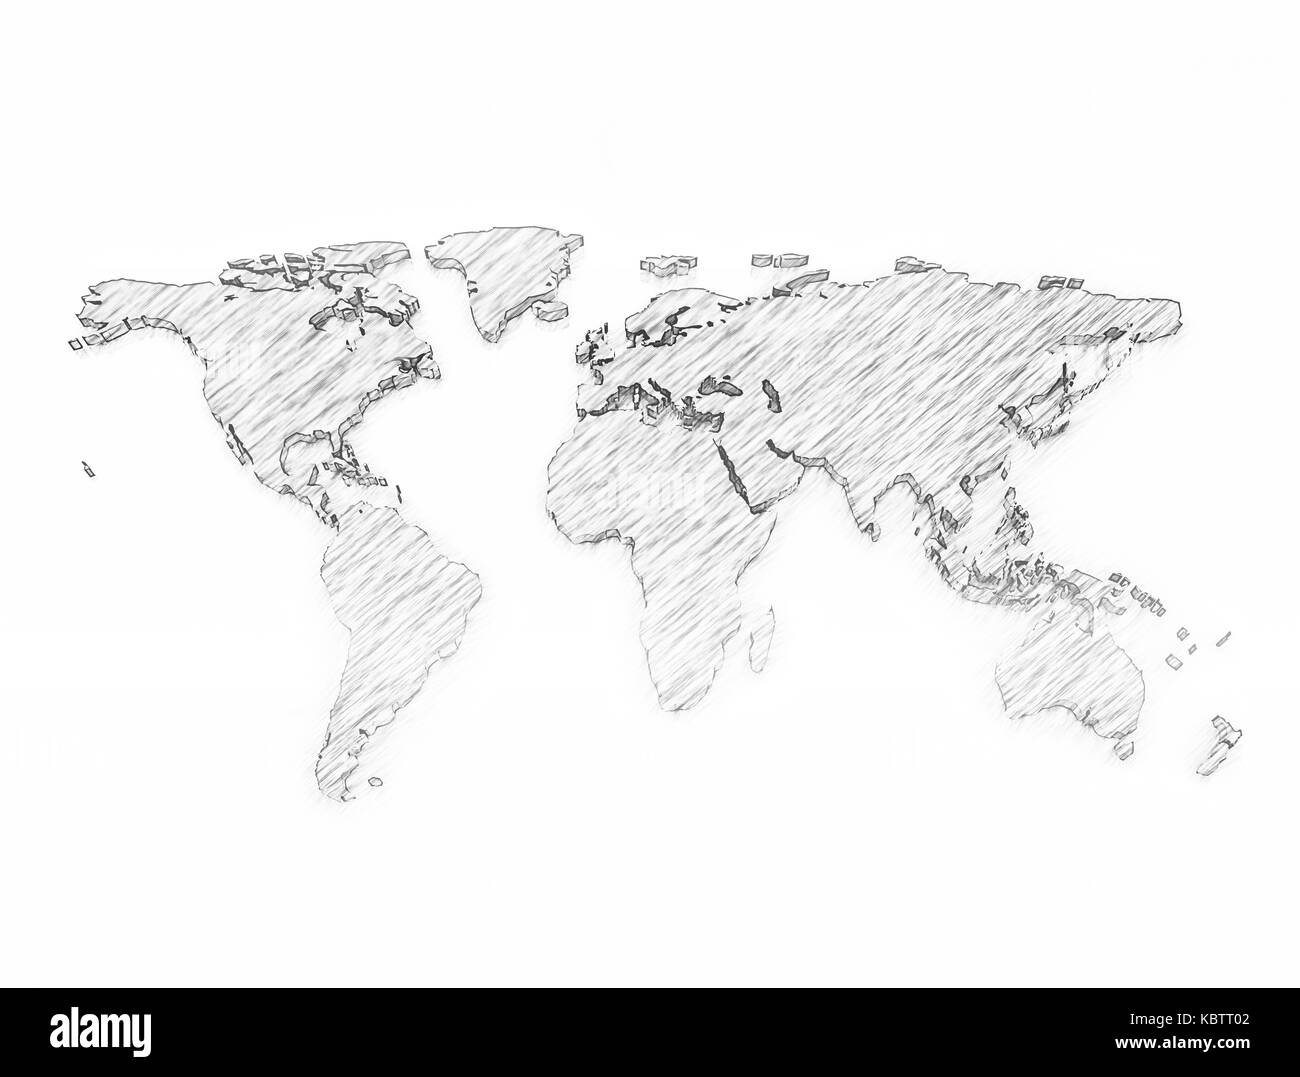 World map 3d pencil sketch isolated on white background